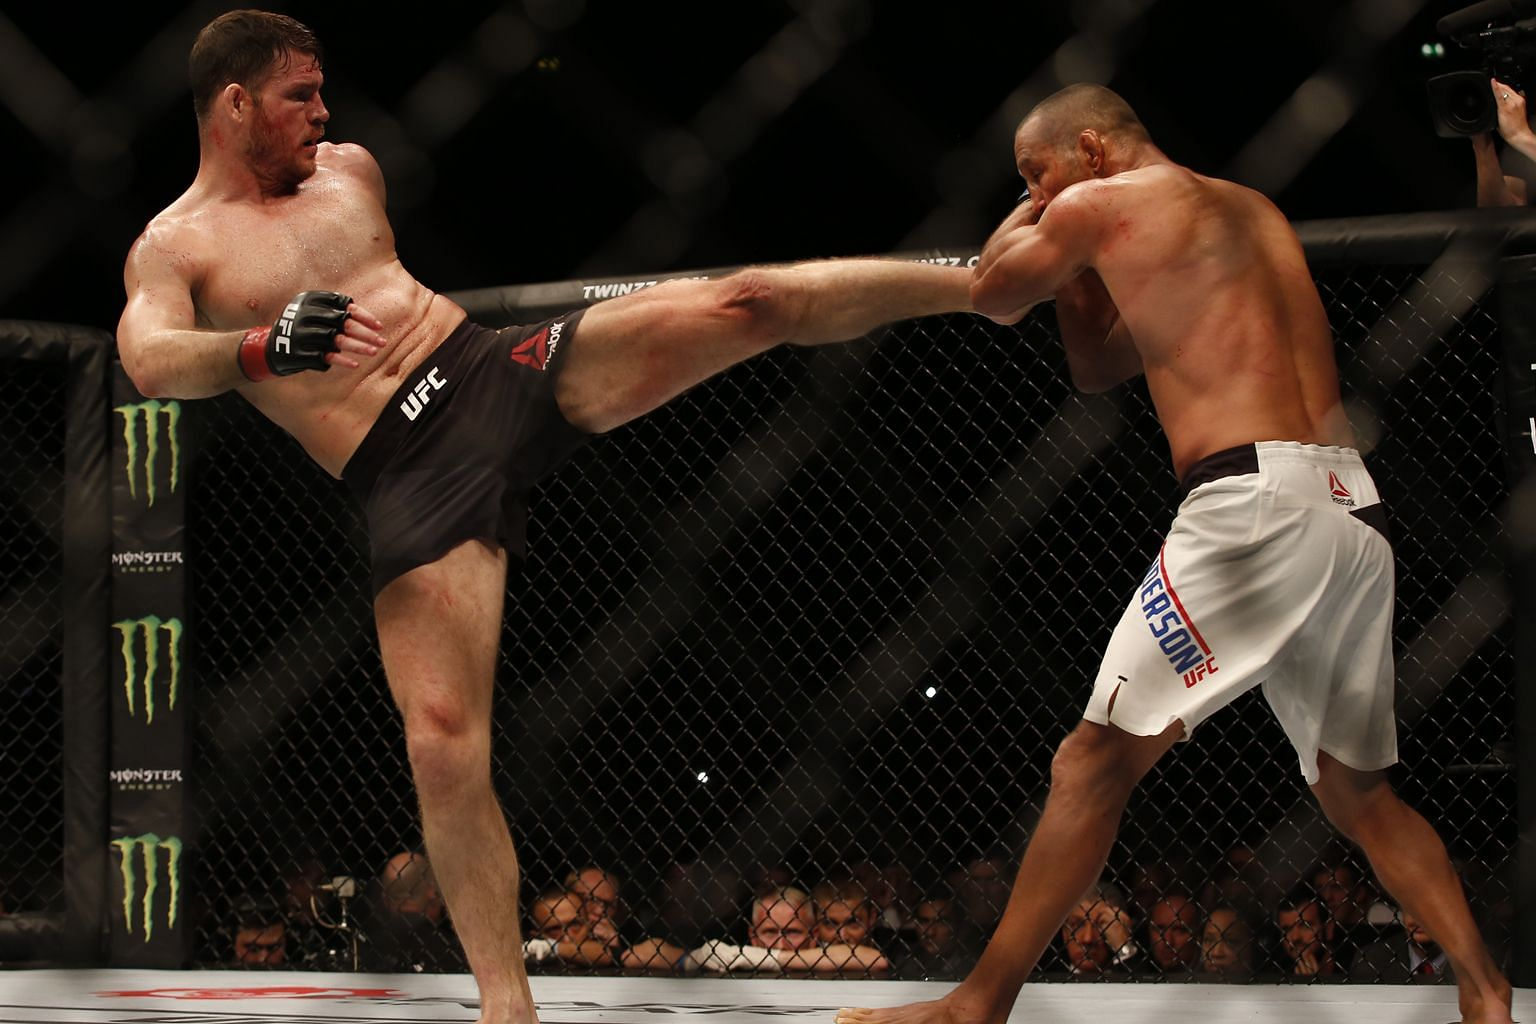 Michael Bisping kicking Dan Henderson during the bout, which all three judges gave to the middleweight defending champion. This was the 46-year-old Henderson's final pro fight.